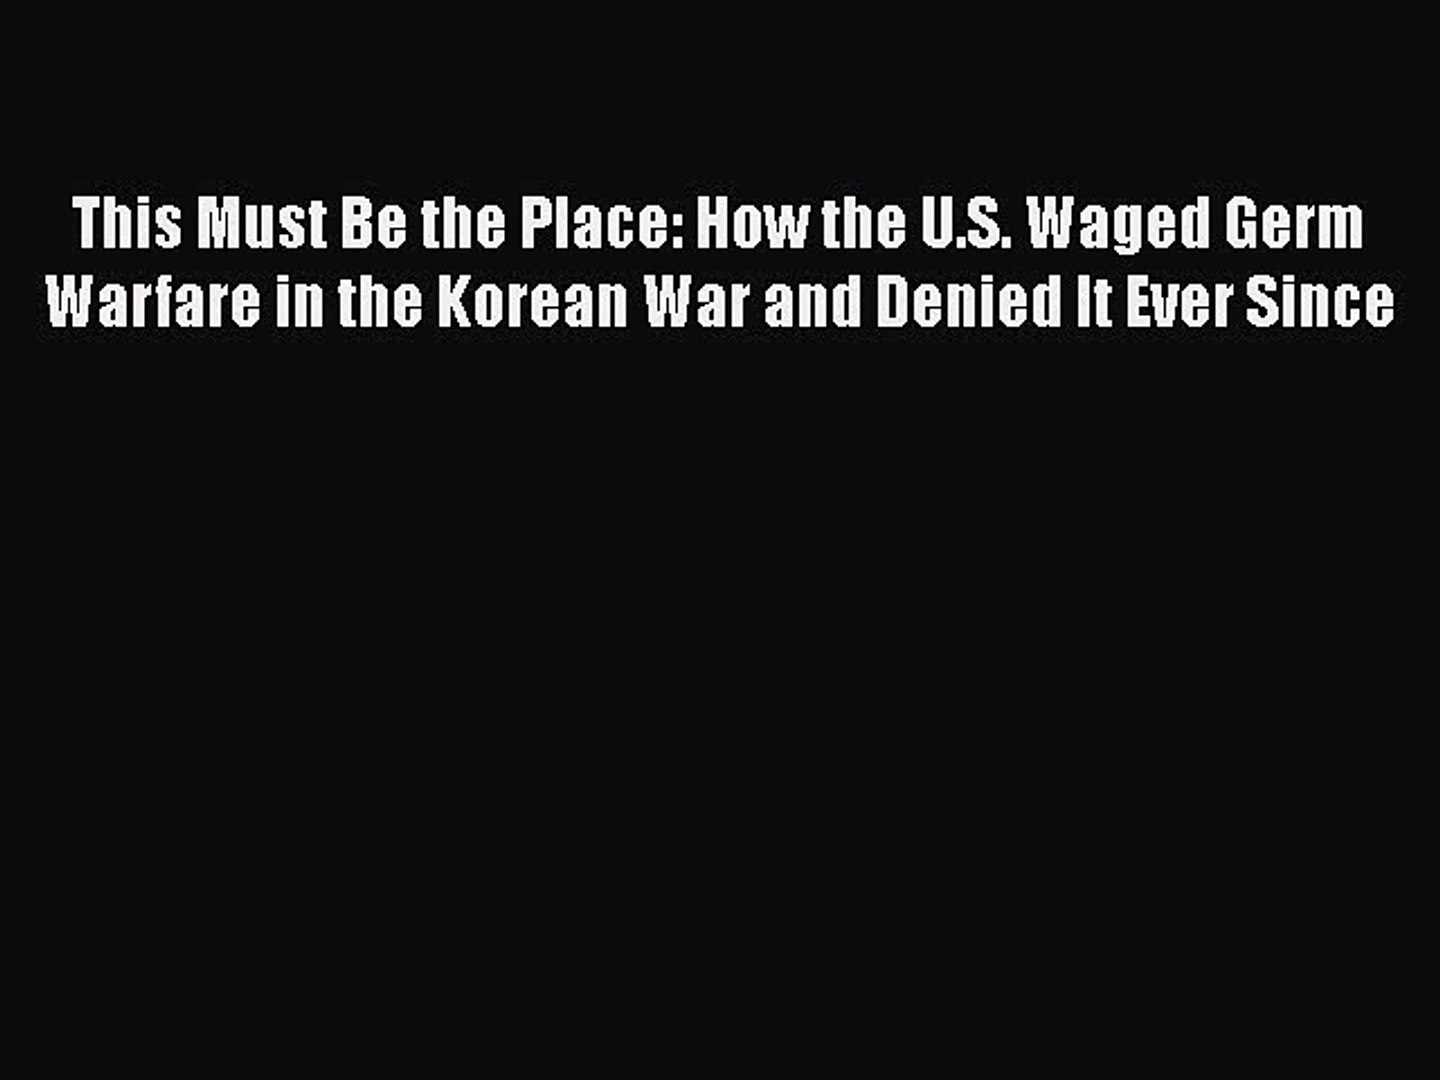 Read This Must Be the Place: How the U.S. Waged Germ Warfare in the Korean War and Denied It